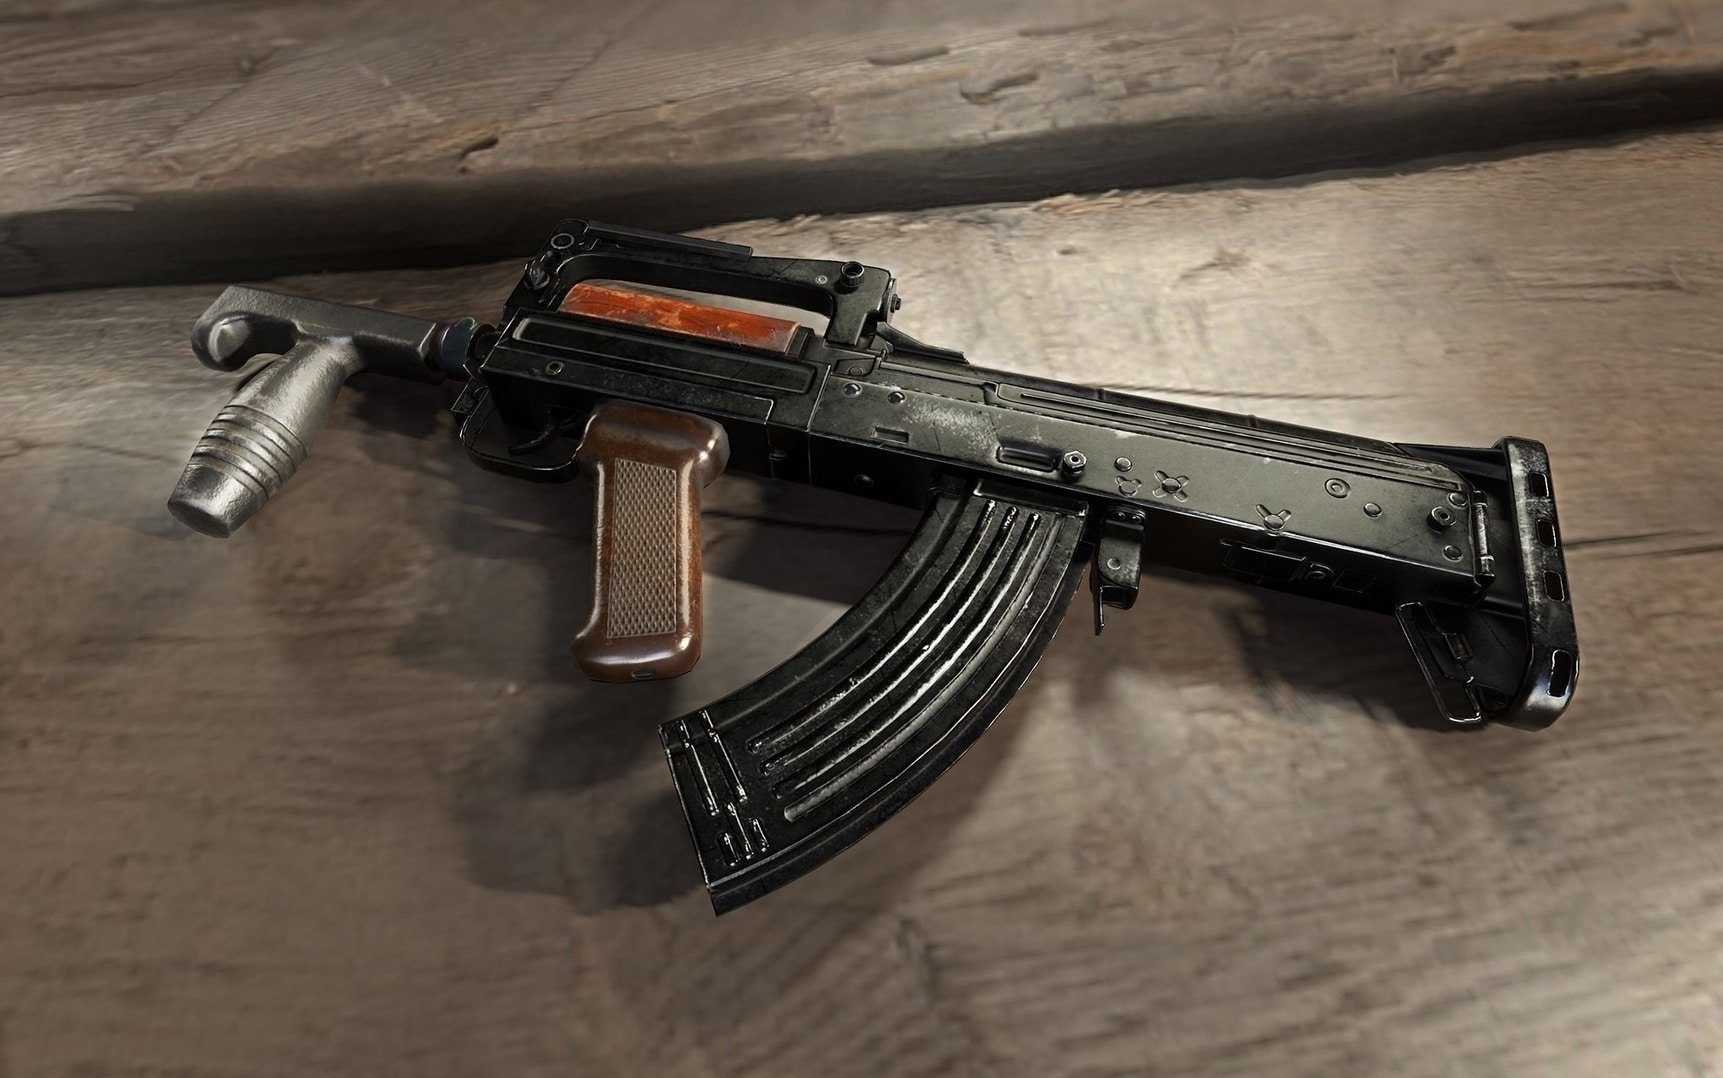 PUBG Groza Assault Rifle